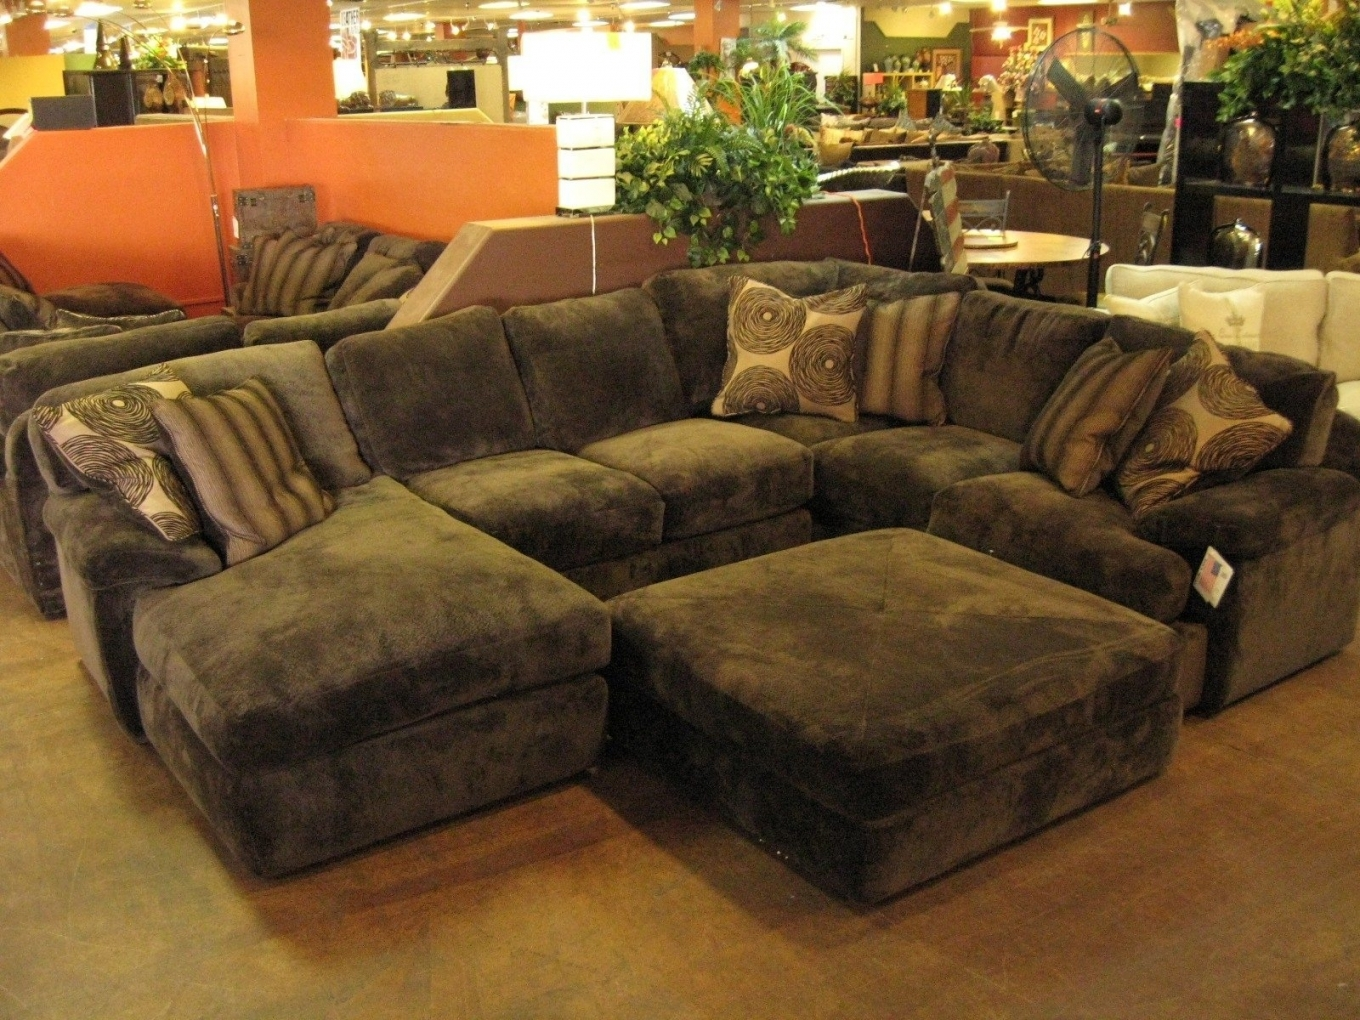 Best Comfy Sectional Sofas 18 For Your Sofas And Couches Ideas With Intended For Comfy Sectional Sofas (Image 3 of 10)